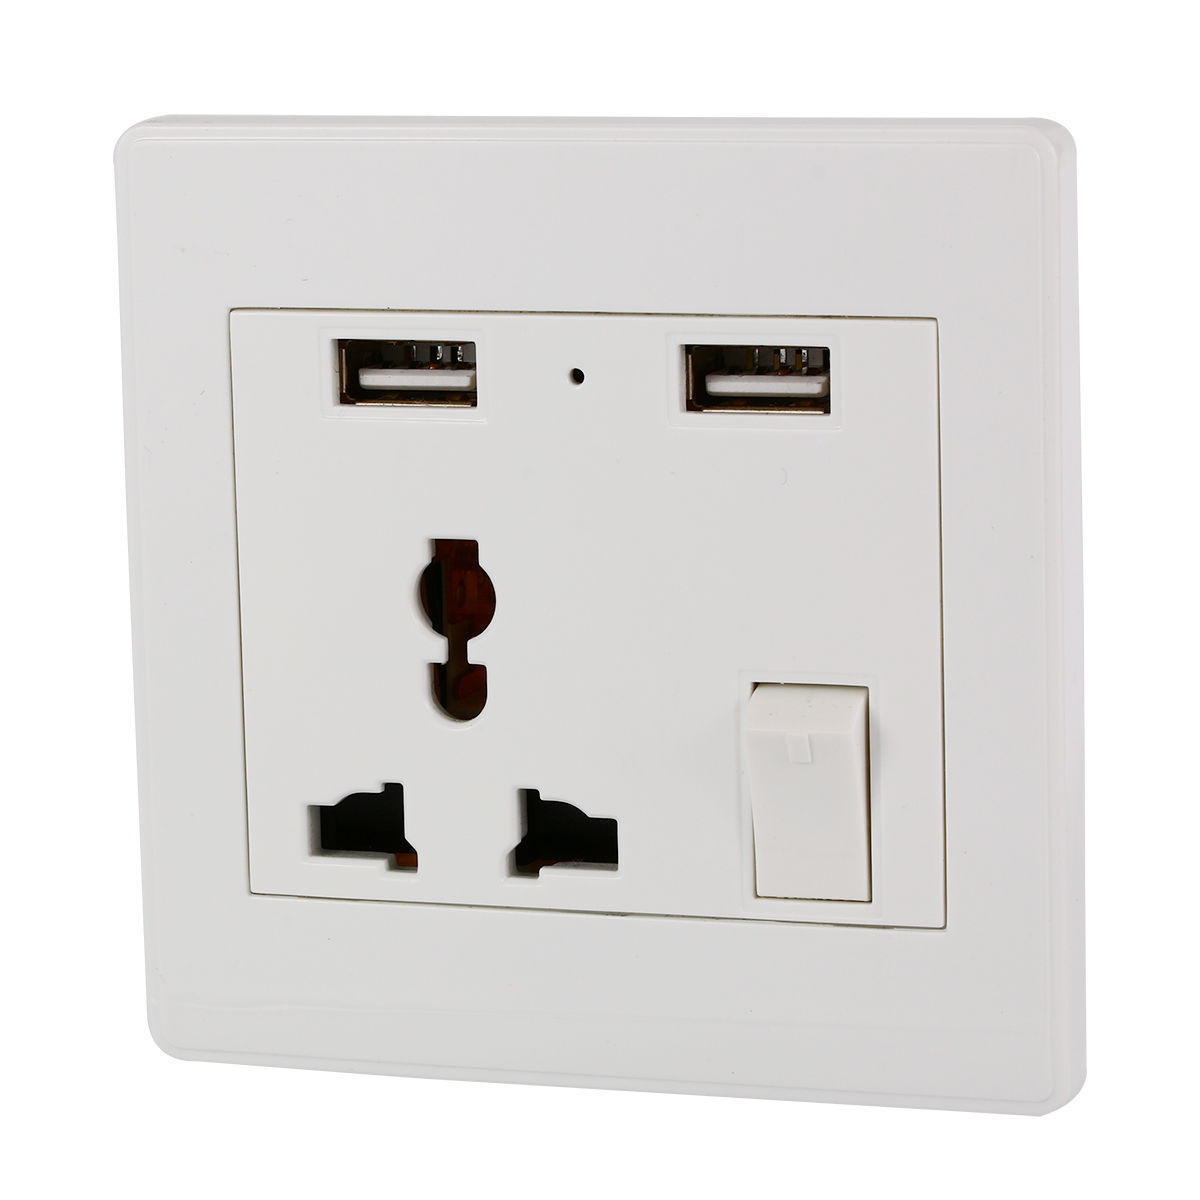 Usb Power Plug Universal Dual 2 Usb Electric Wall Power Socket Outlet